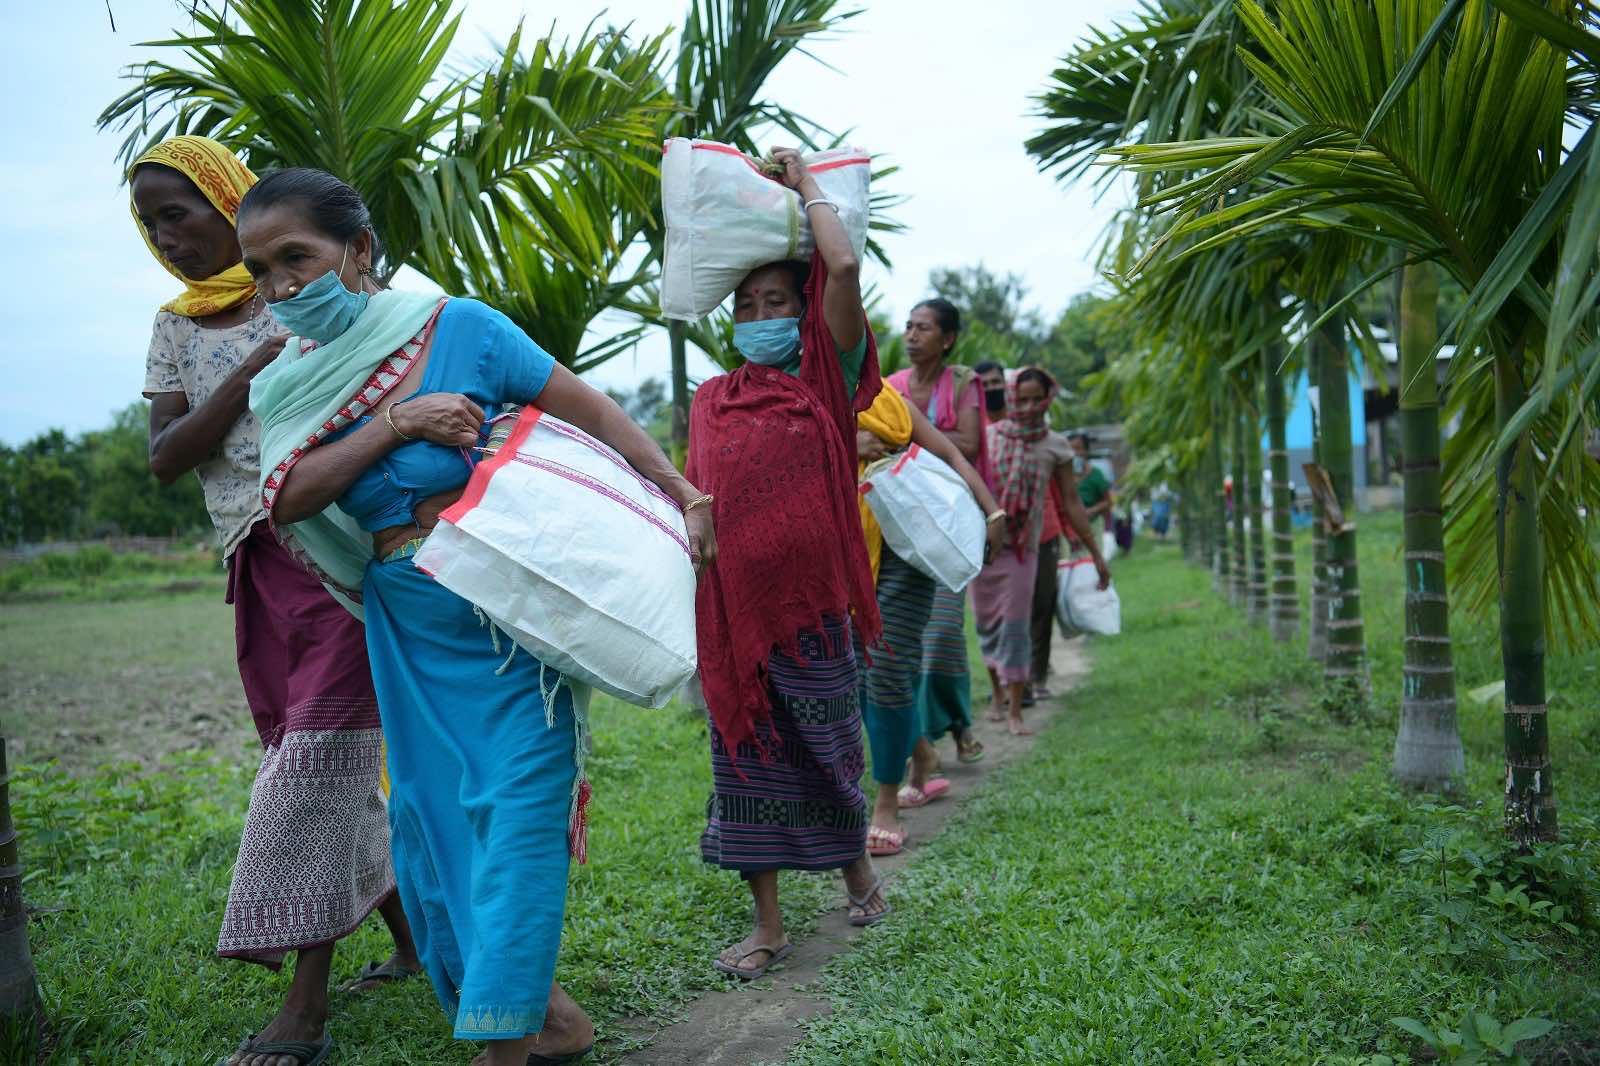 Residents carry food distributed by an NGO after the government eased Covid-19 restrictions in Jampuijala, India, 16 June 2021 (Str/Xinhua via Getty Images)